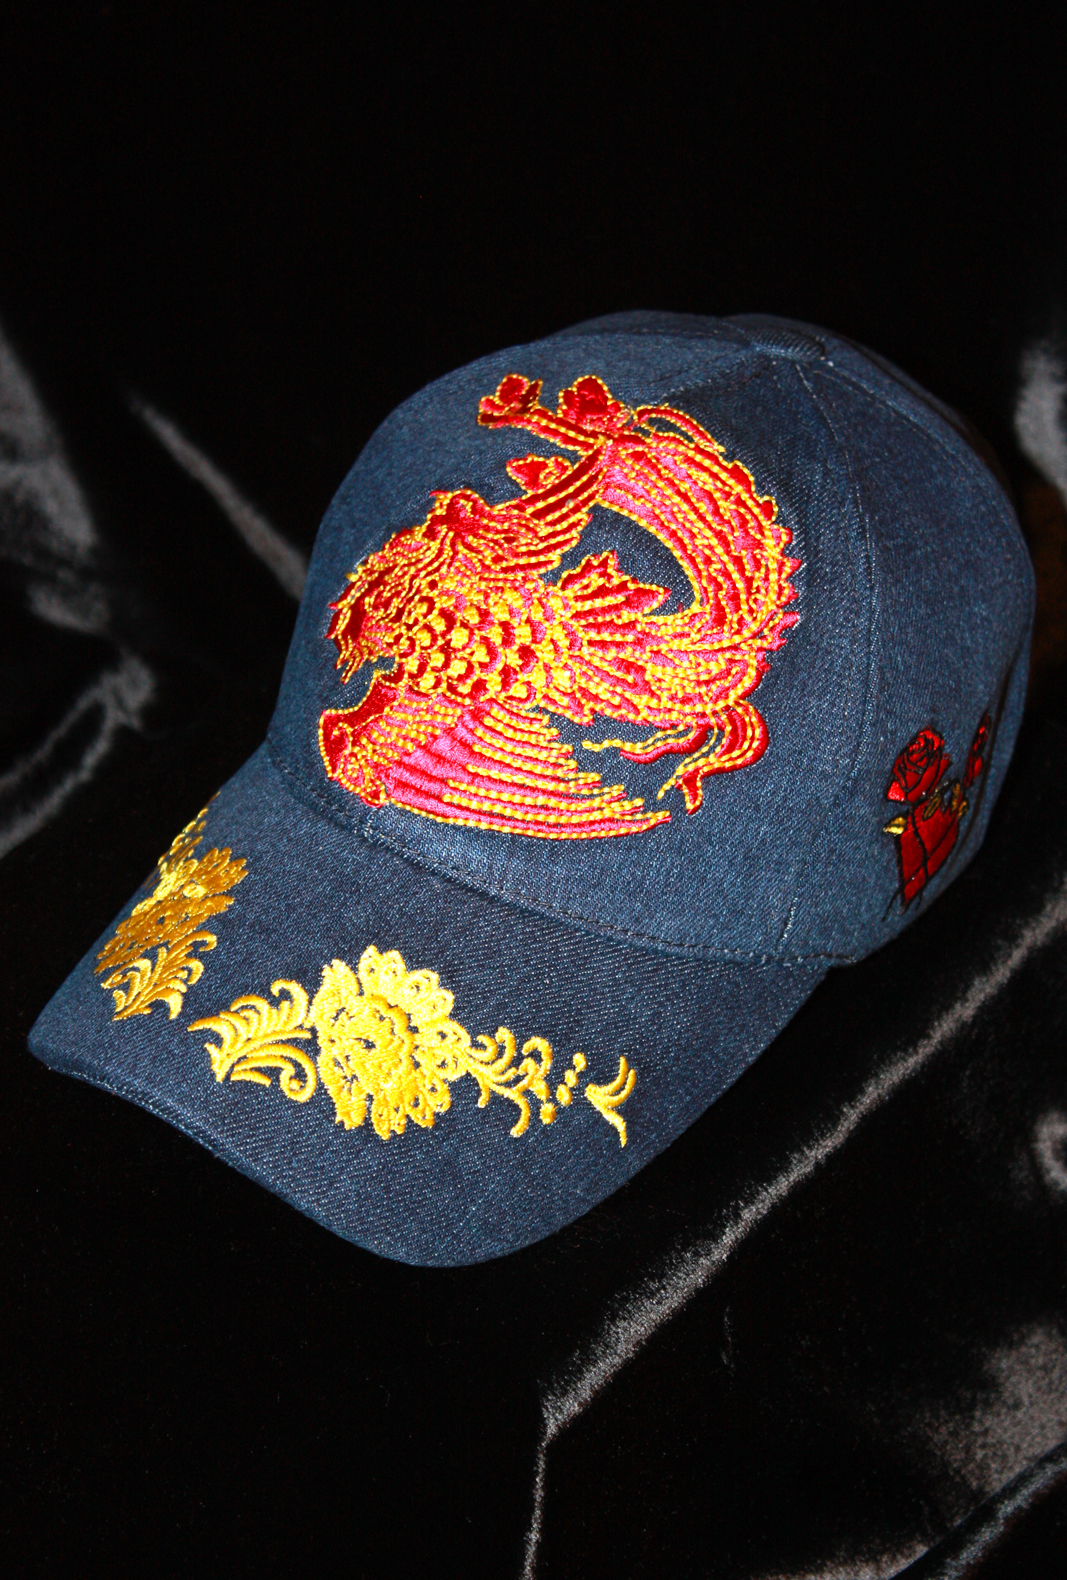 90a167615 Denim Baseball Cap Shanghai Flower Glam Rock Rebel Chic Women Hat from  Charles King Paris